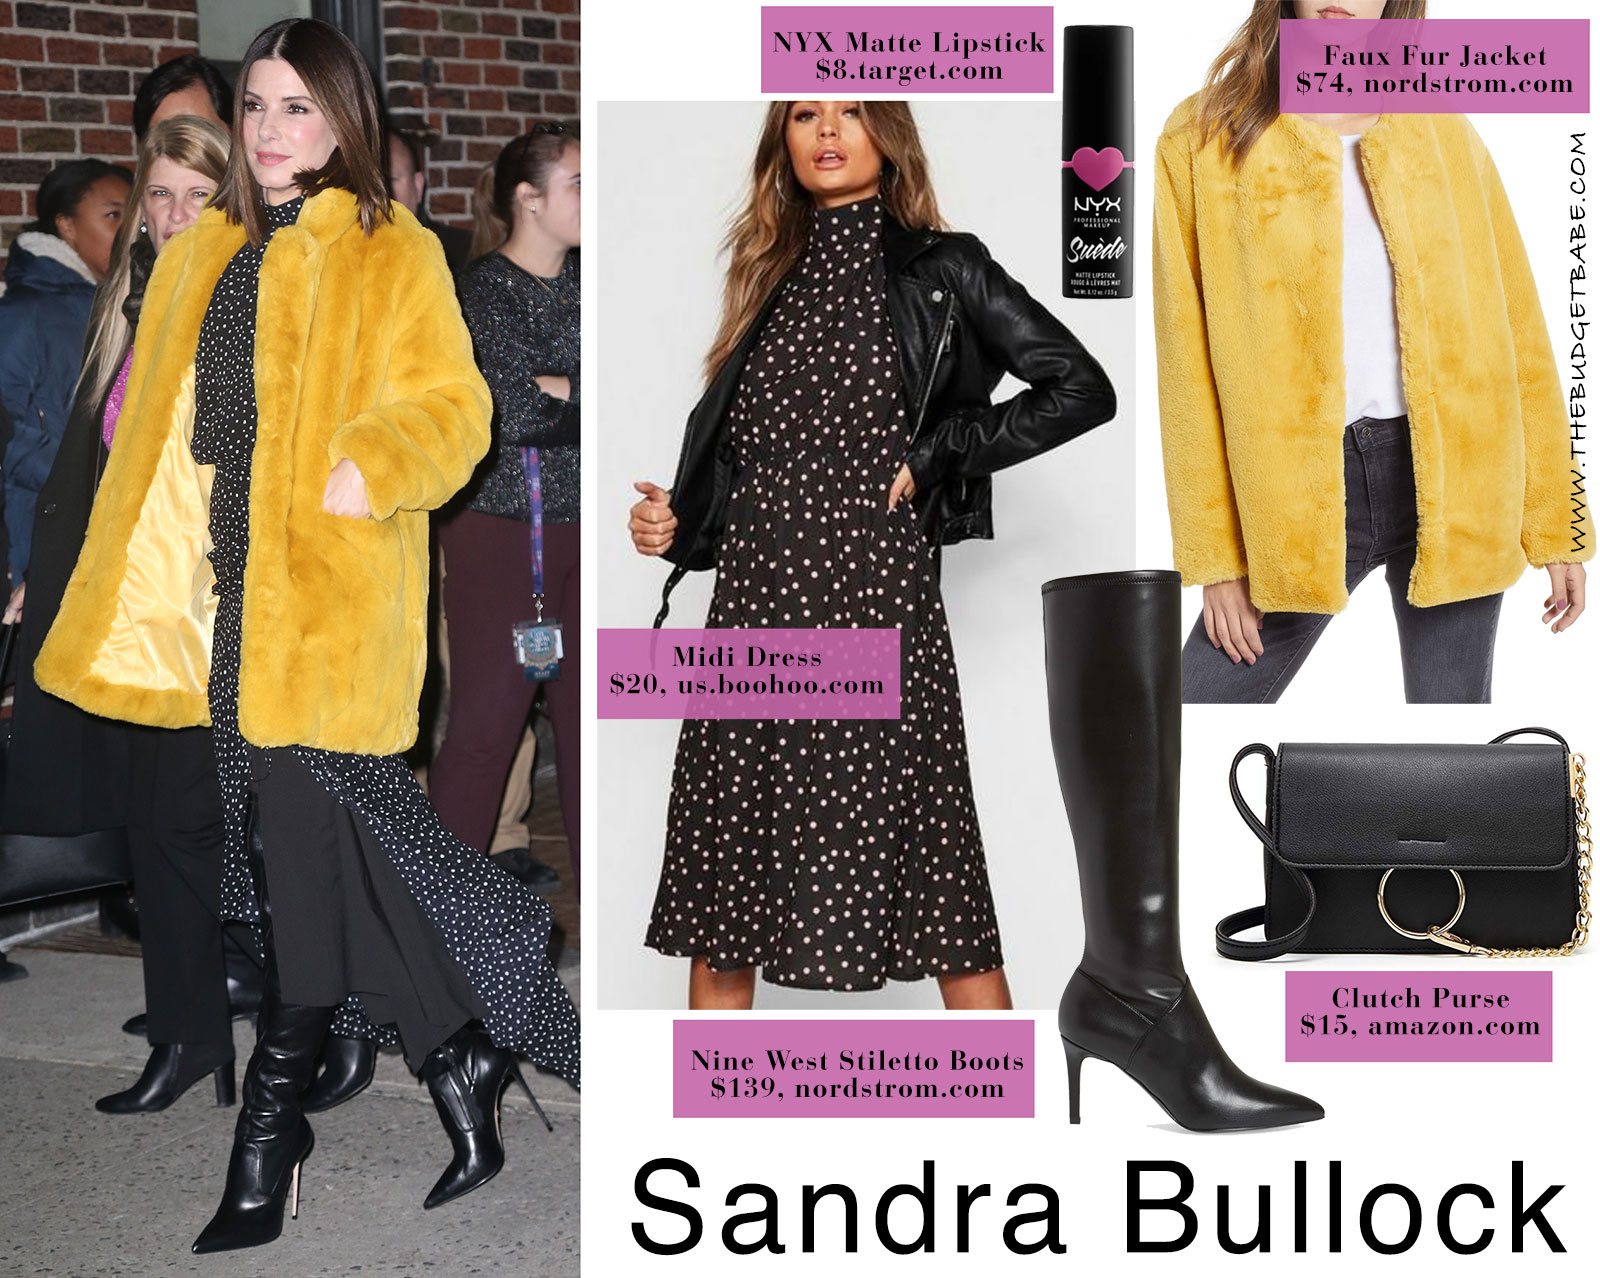 Sandra Bullock always looks so put together!